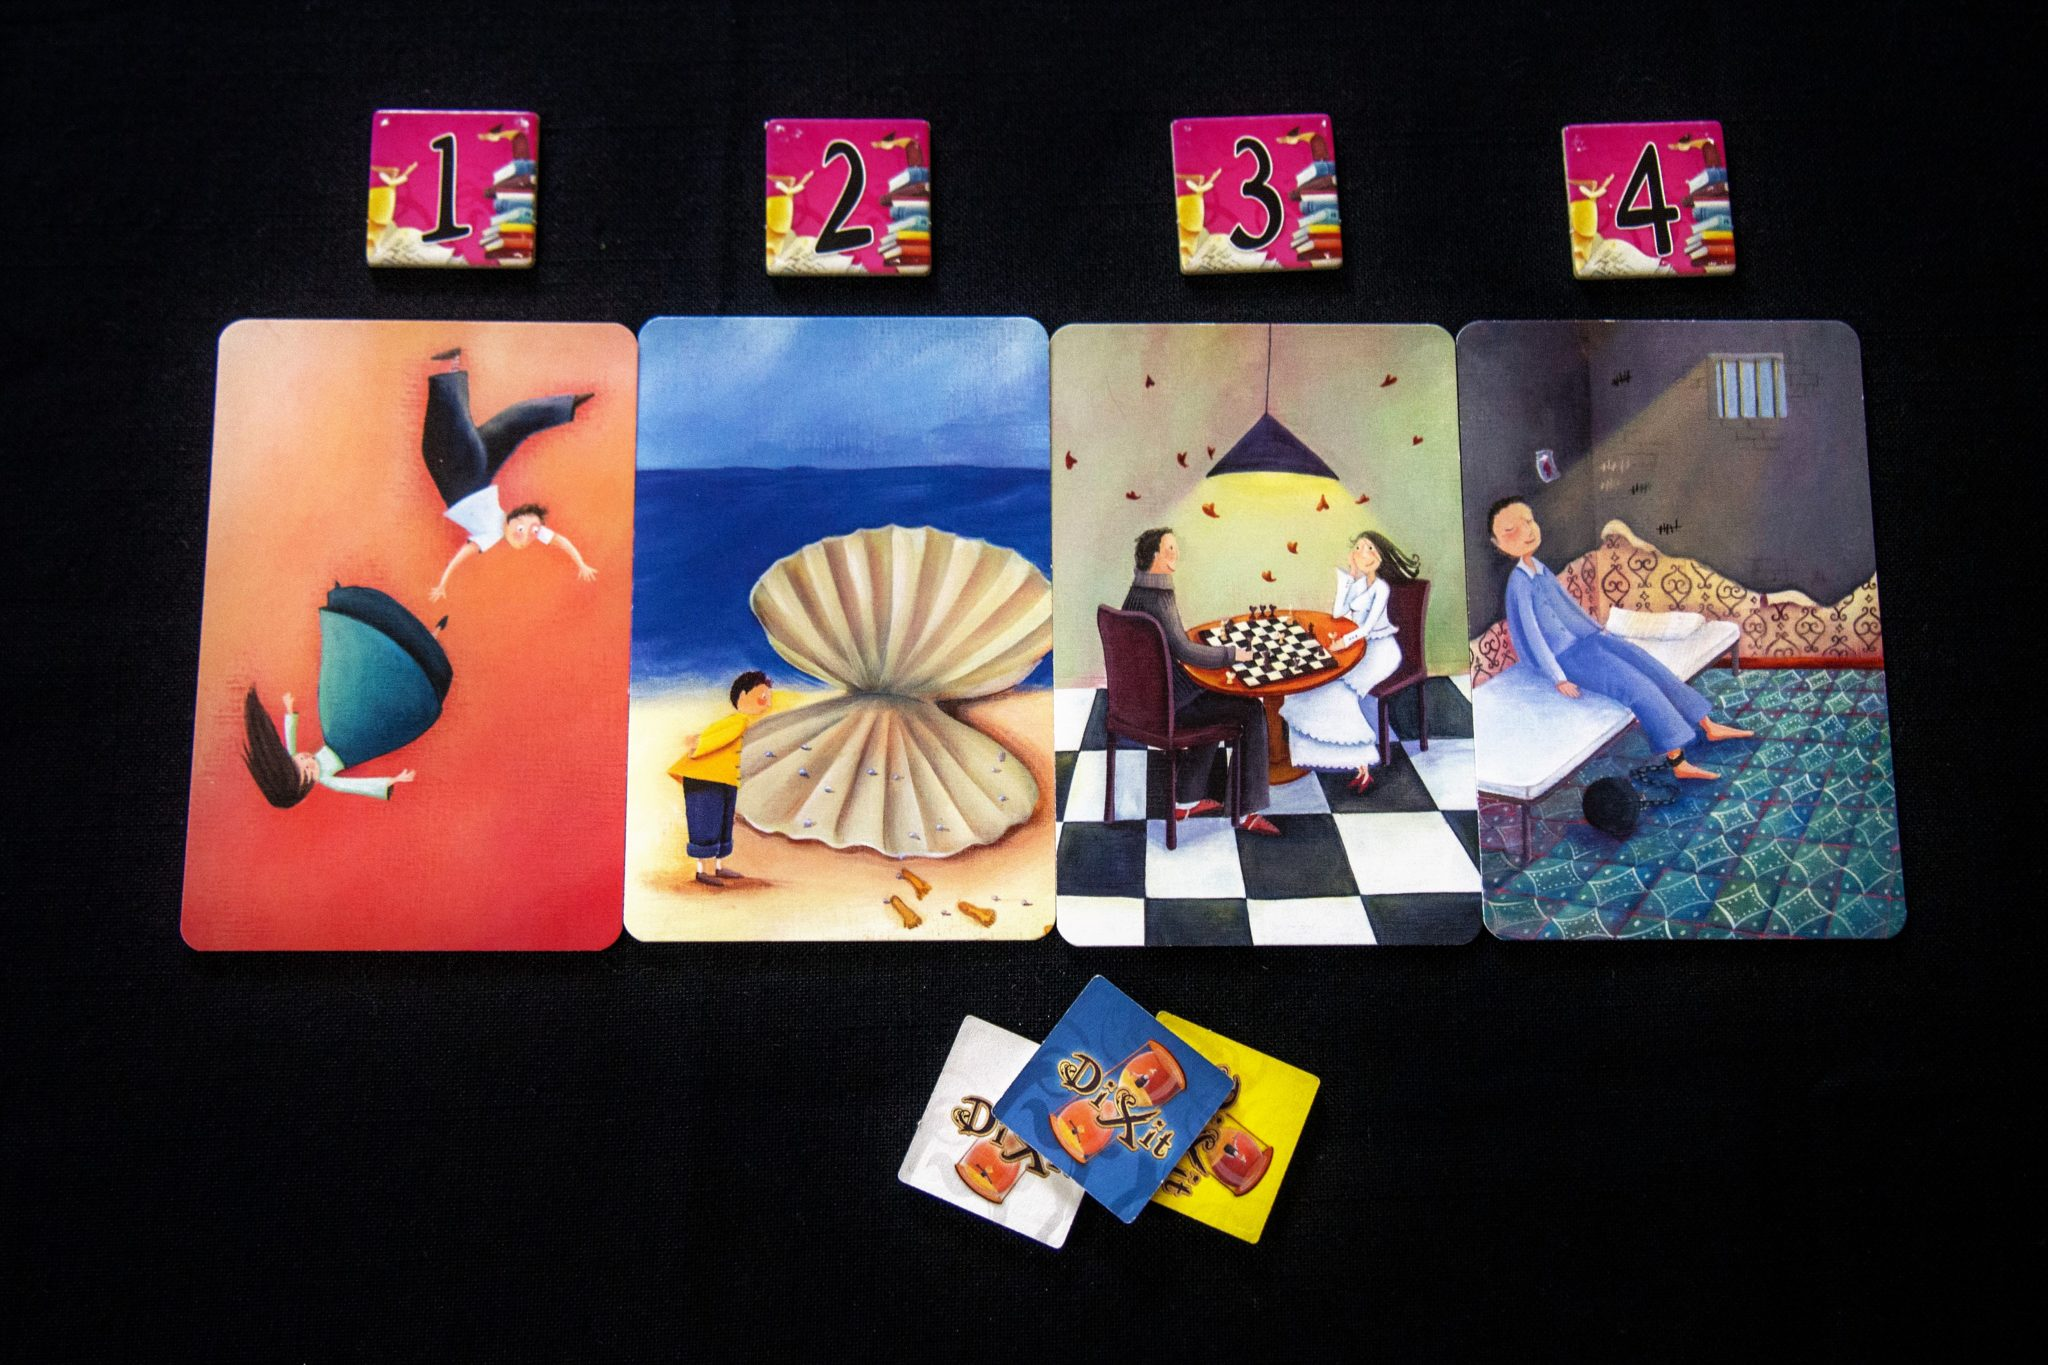 Cards from Dixit